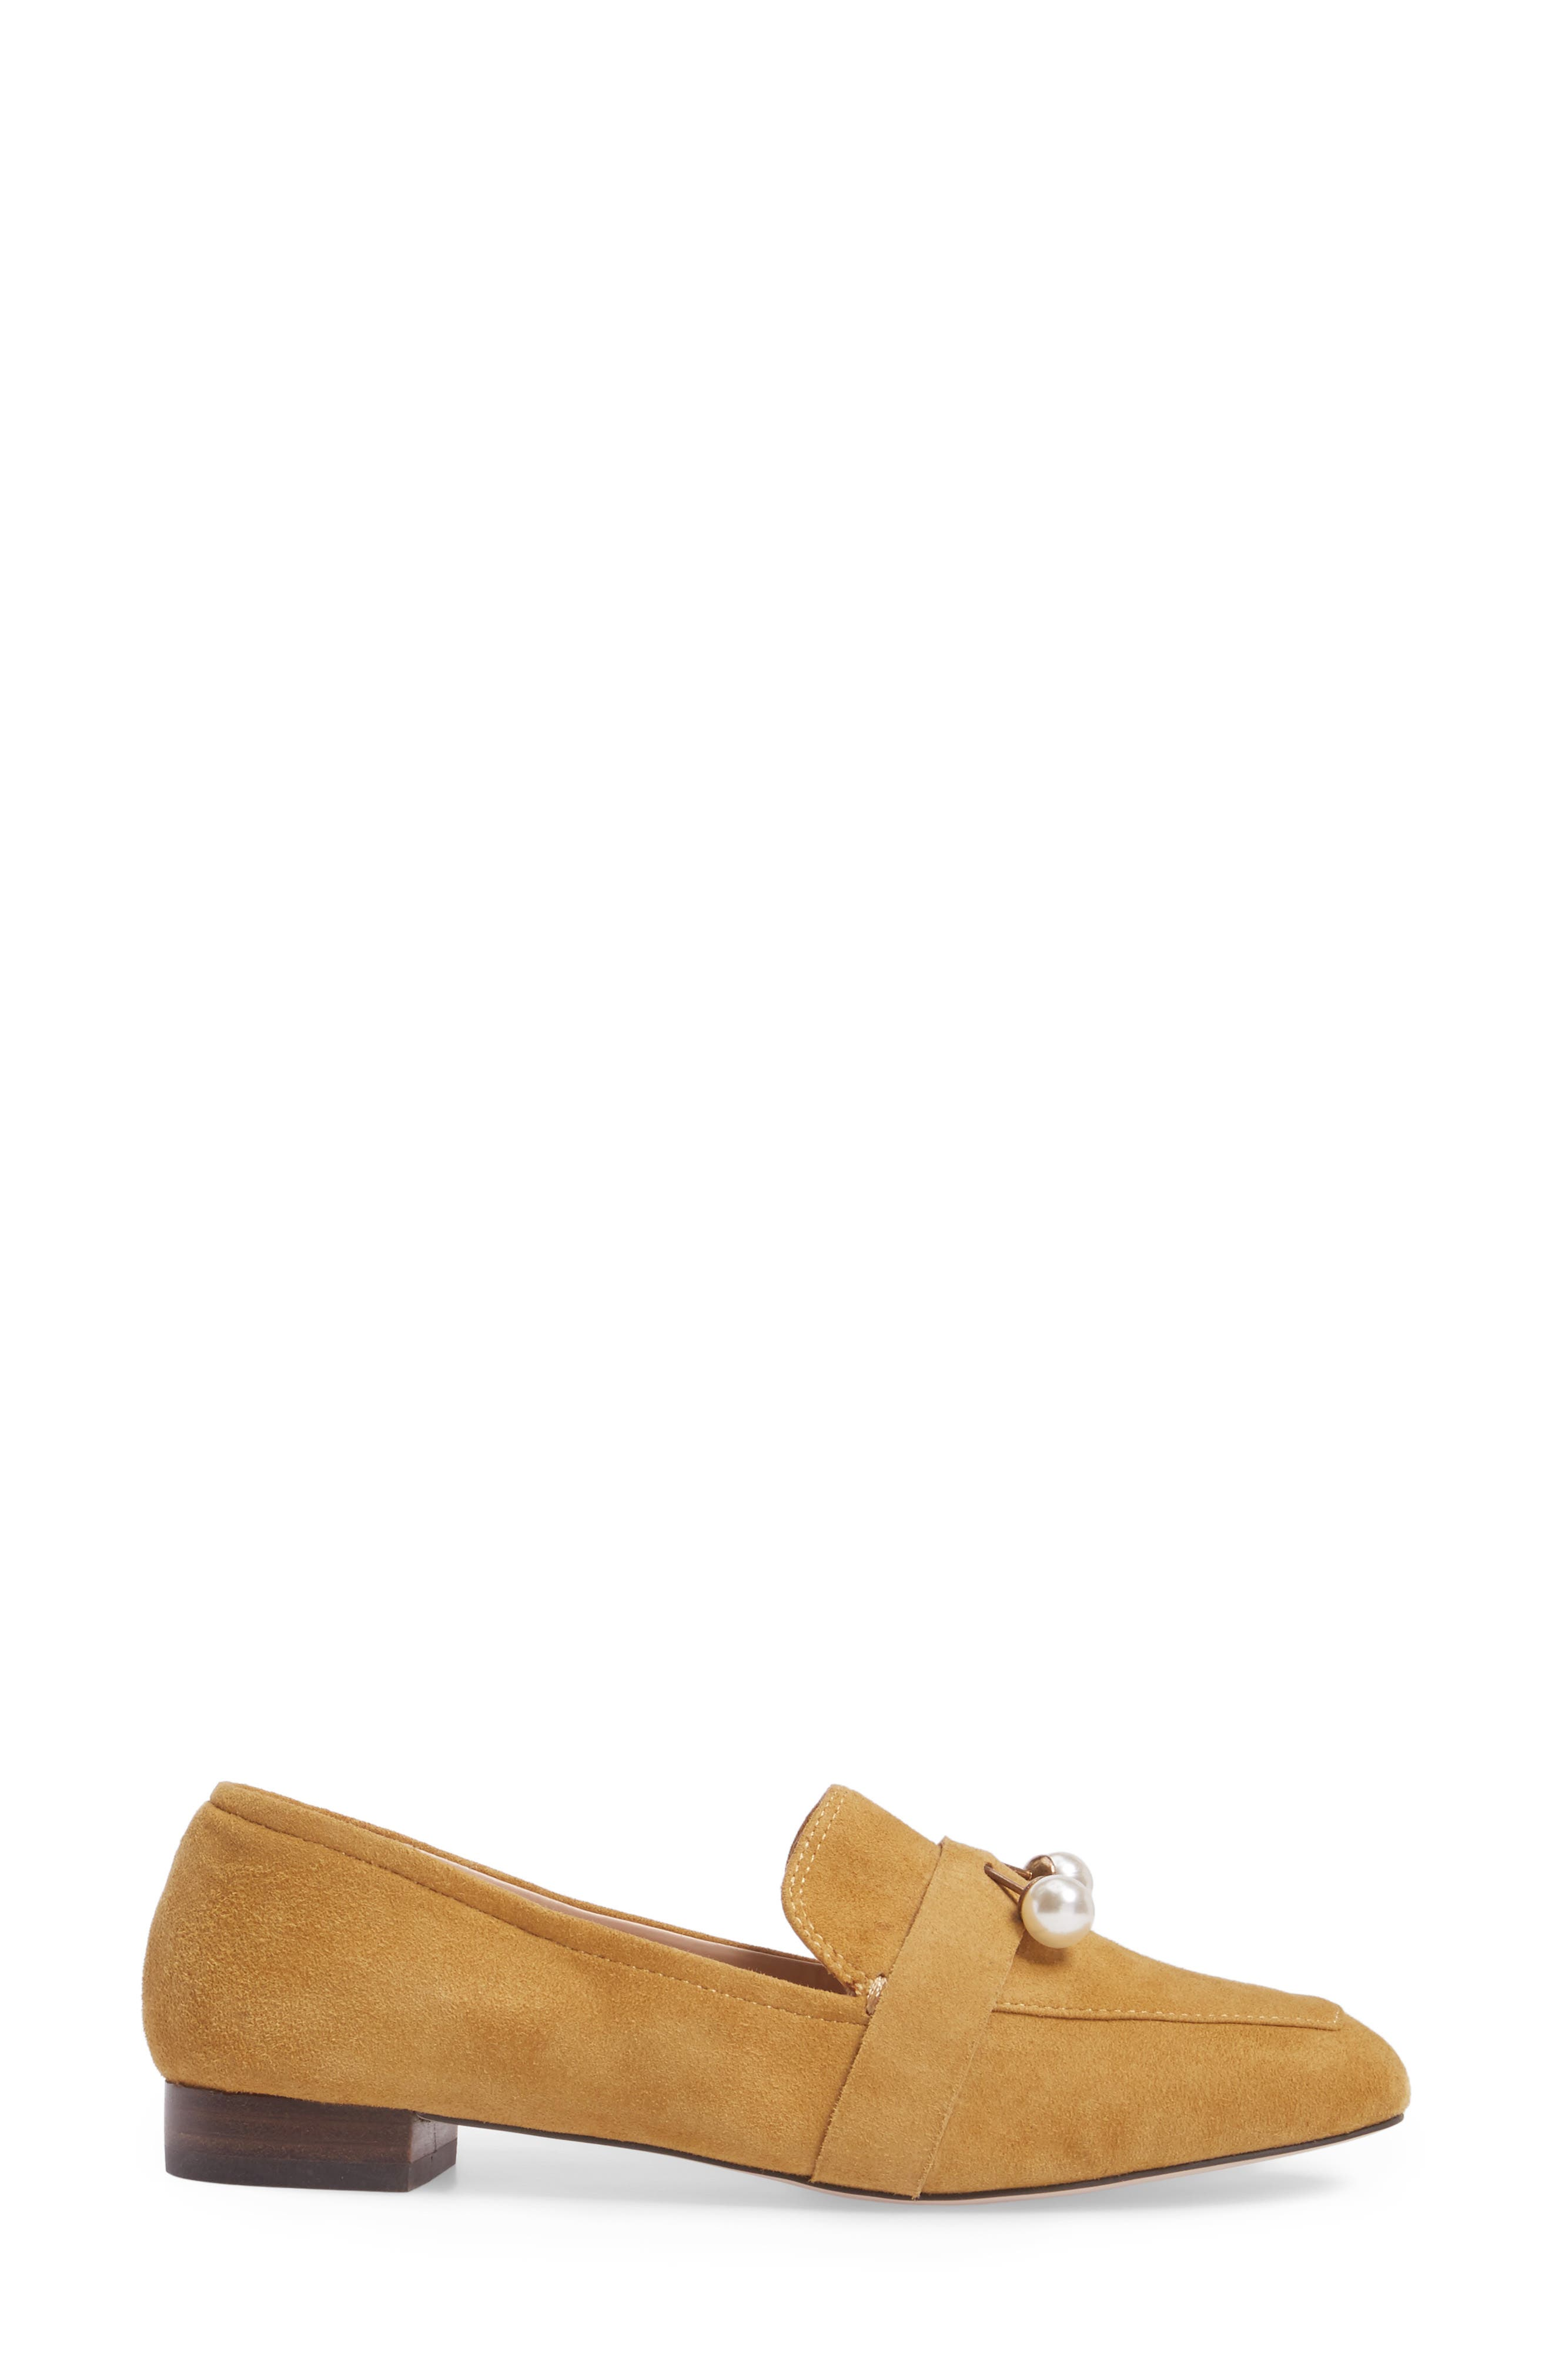 Caspar Loafer,                             Alternate thumbnail 12, color,